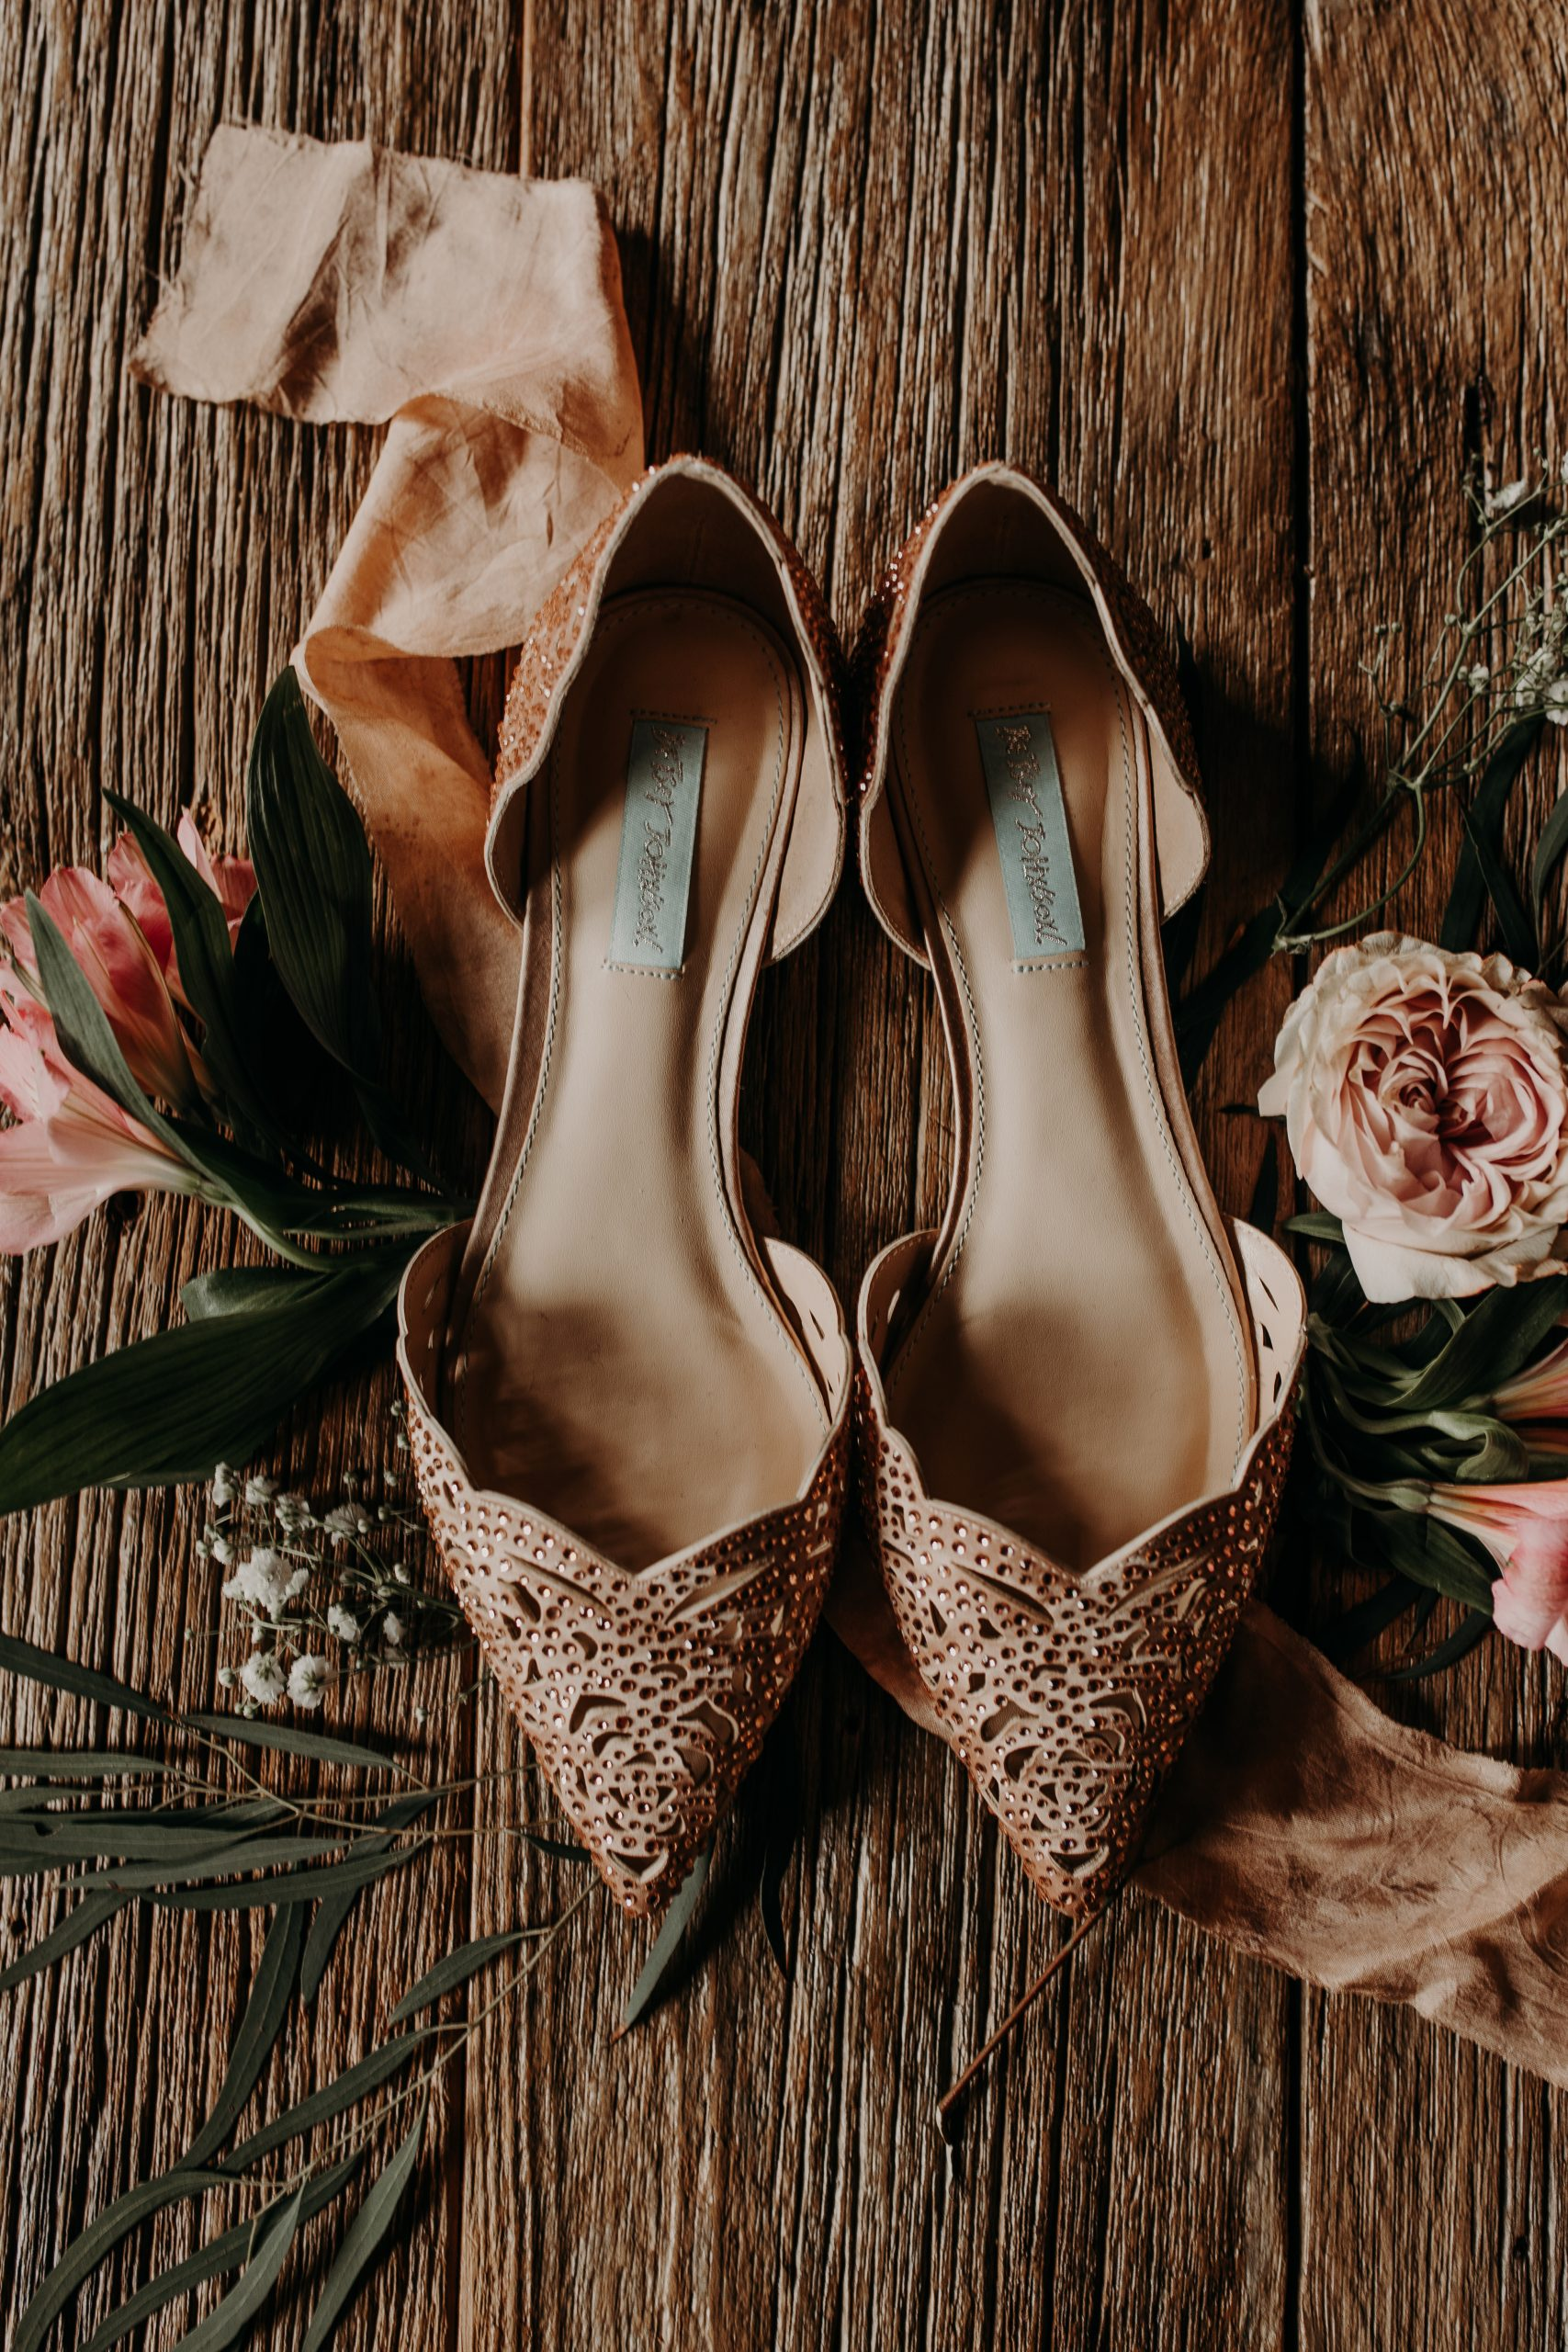 Pink, rhinestone studded heals are the perfect accent to set off any white dress. Christine and Richard wed on the Chestnut Hill Villa grounds on May of 2019. This organic ethereal styled wedding was captured by Garnet Dahlia Photography and featured on Dream Weddings.